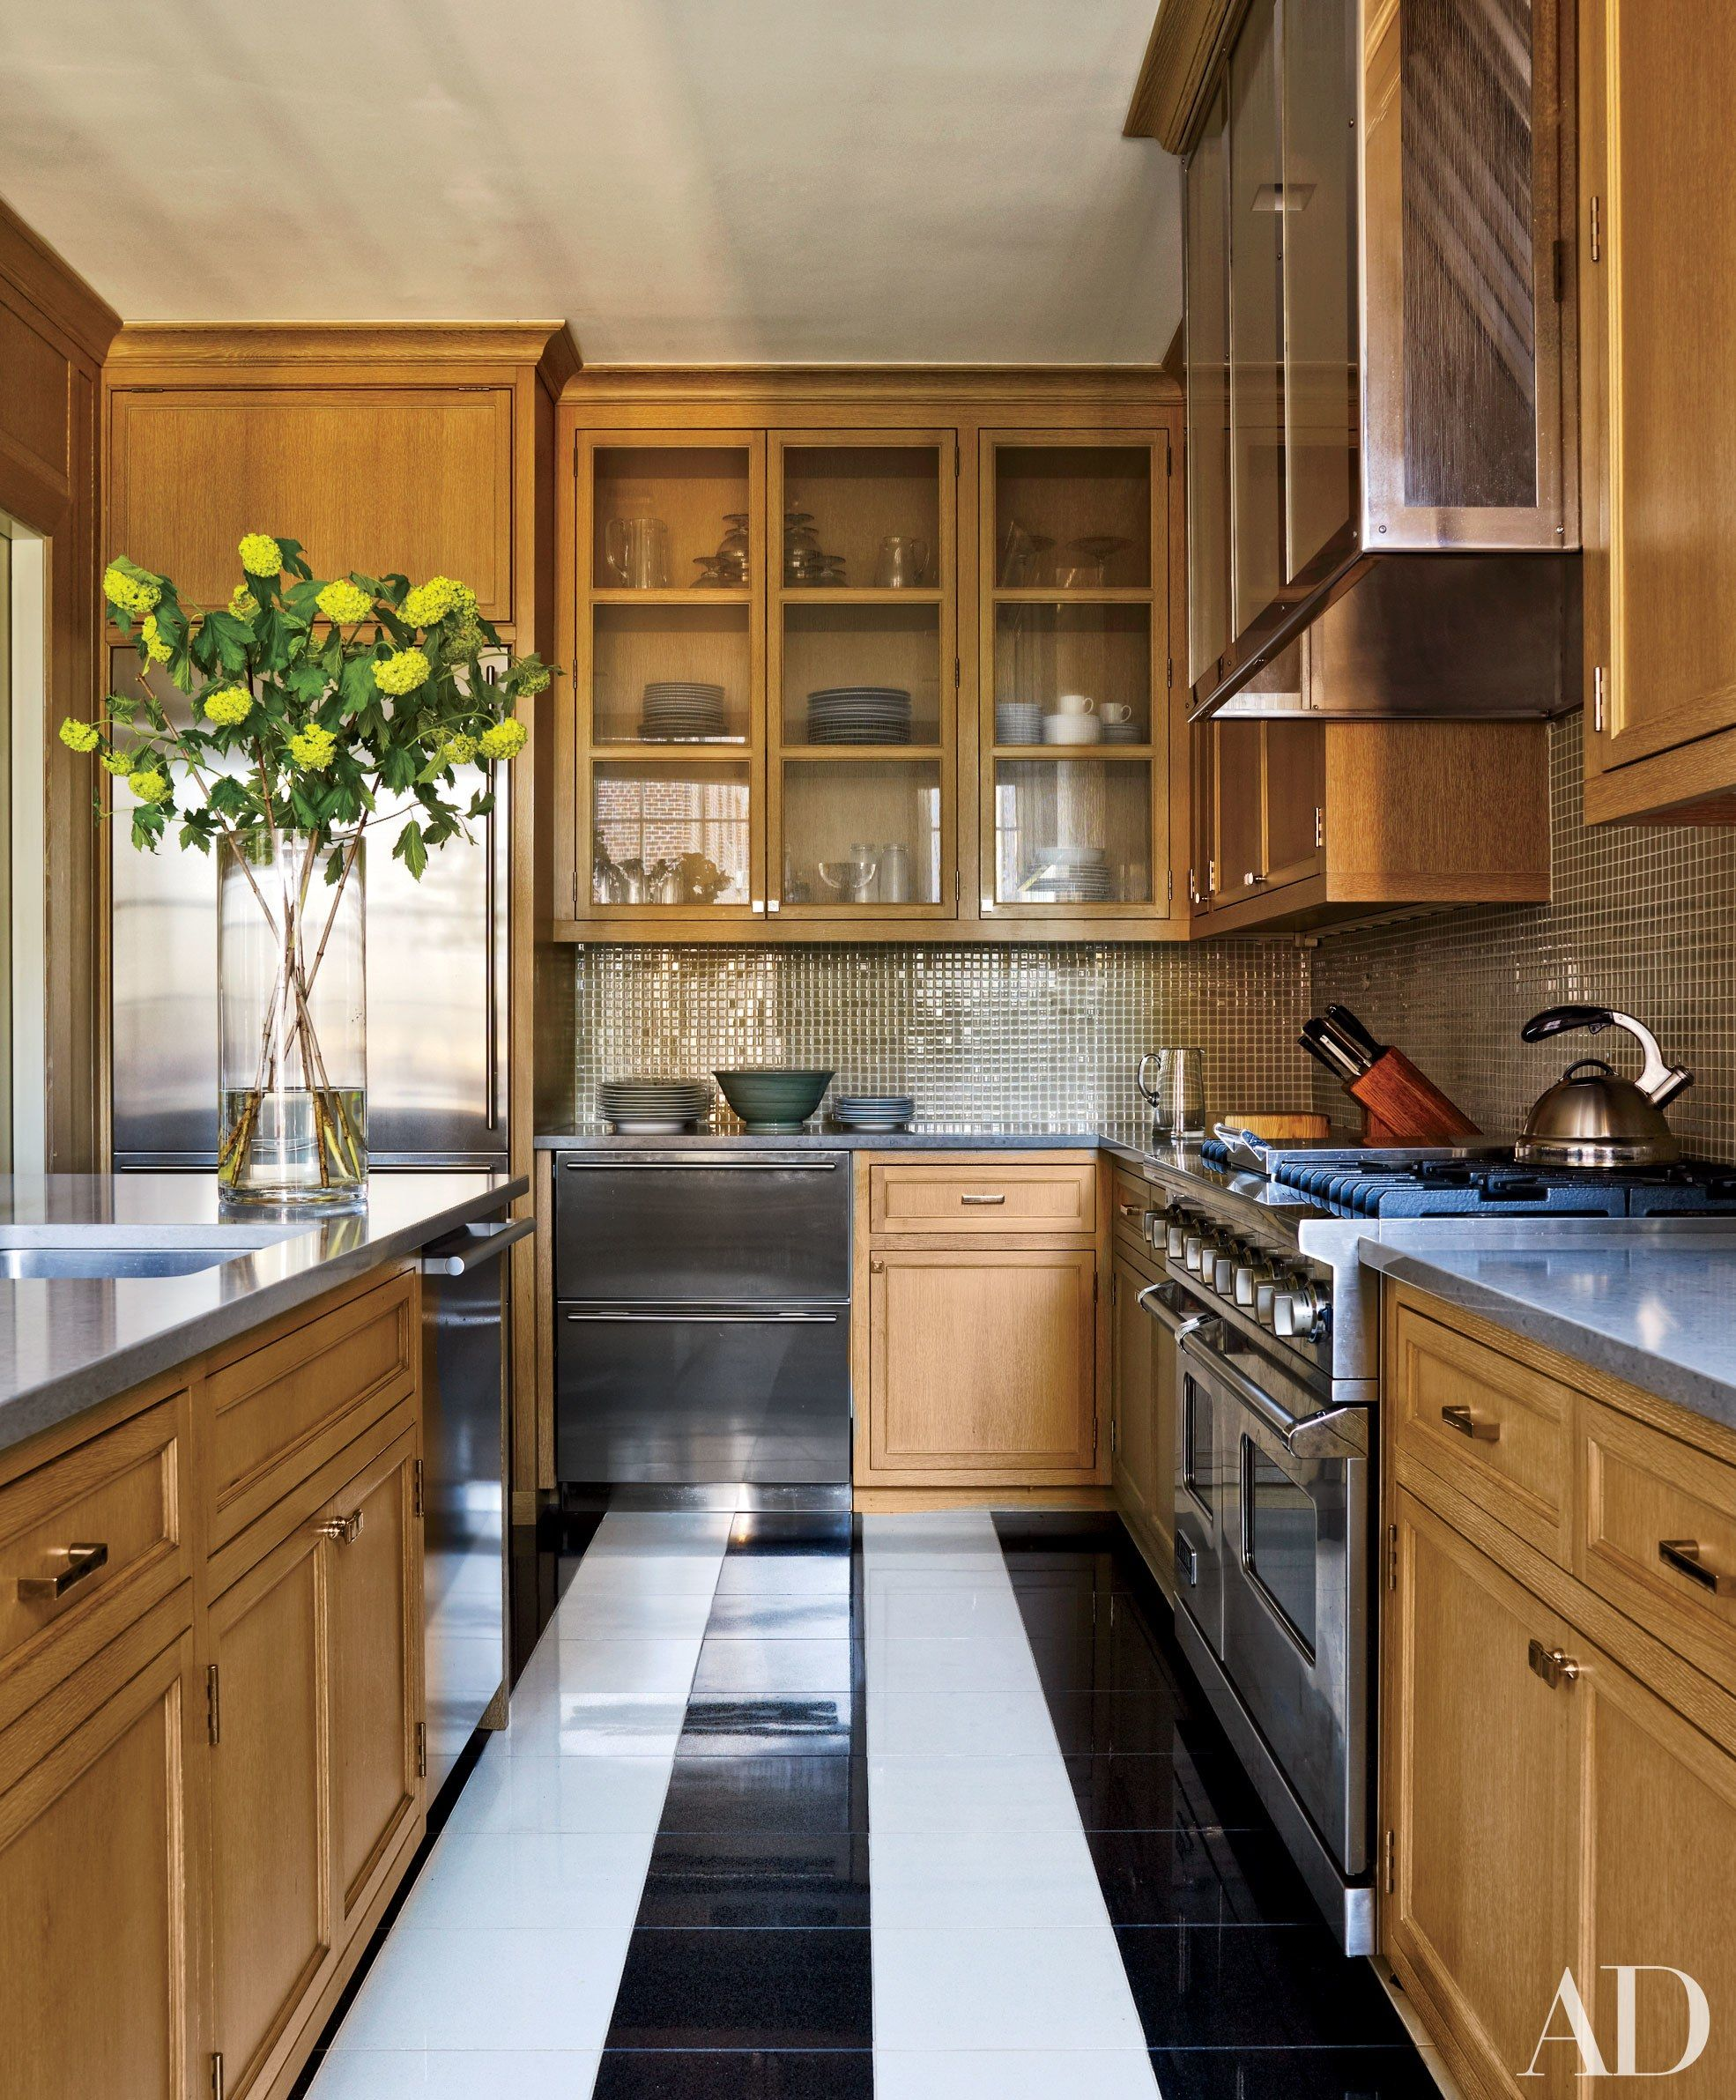 Modern Kitchen Remodel Before And After 15 Spectacular Before And After Kitchen Makeovers  Photos